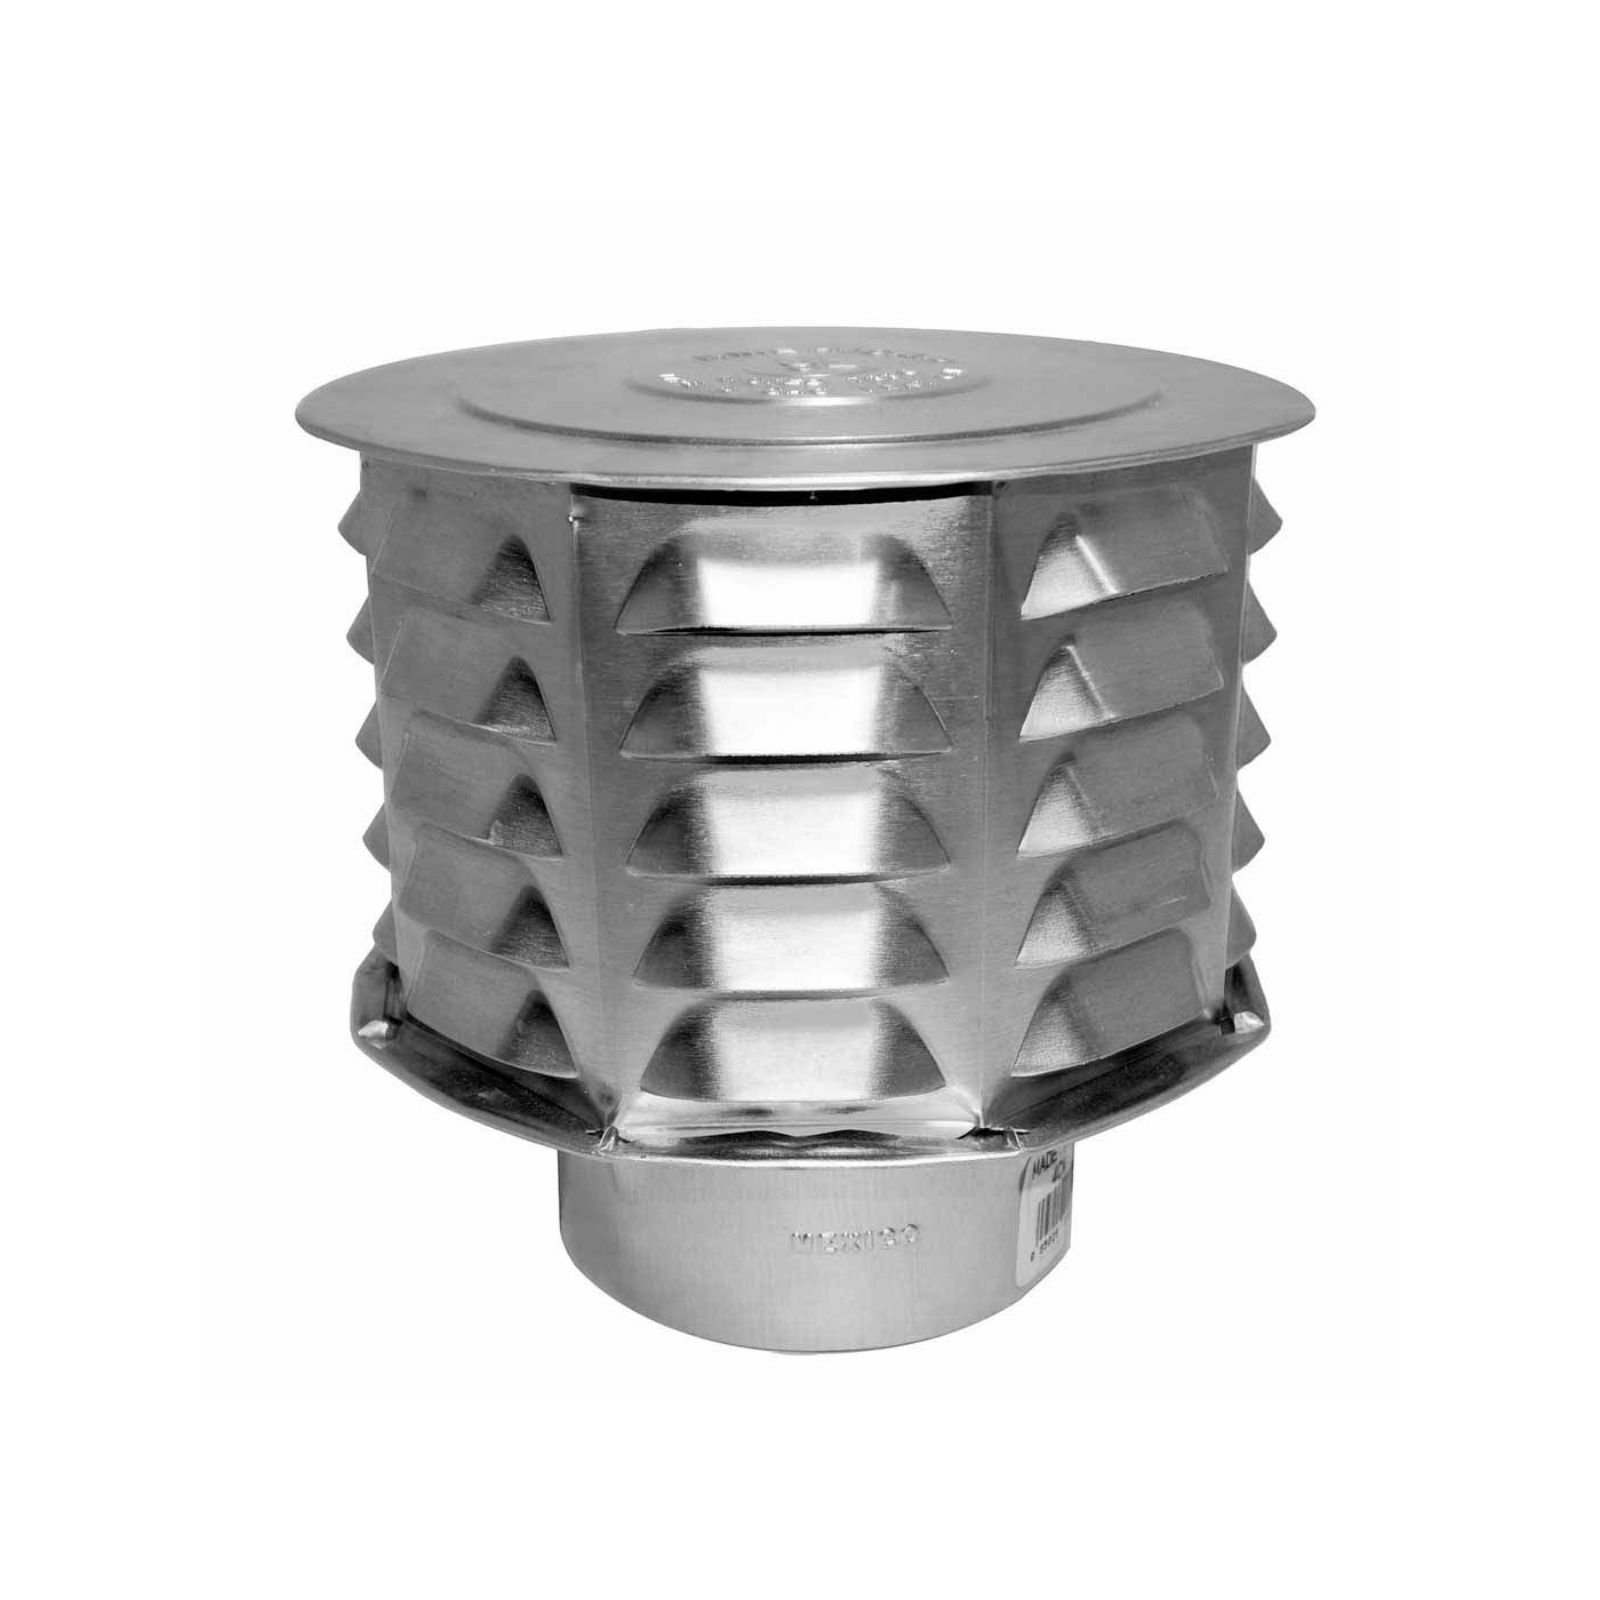 "AmeriVent 5CW - Universal Cap 5"", Louvered"